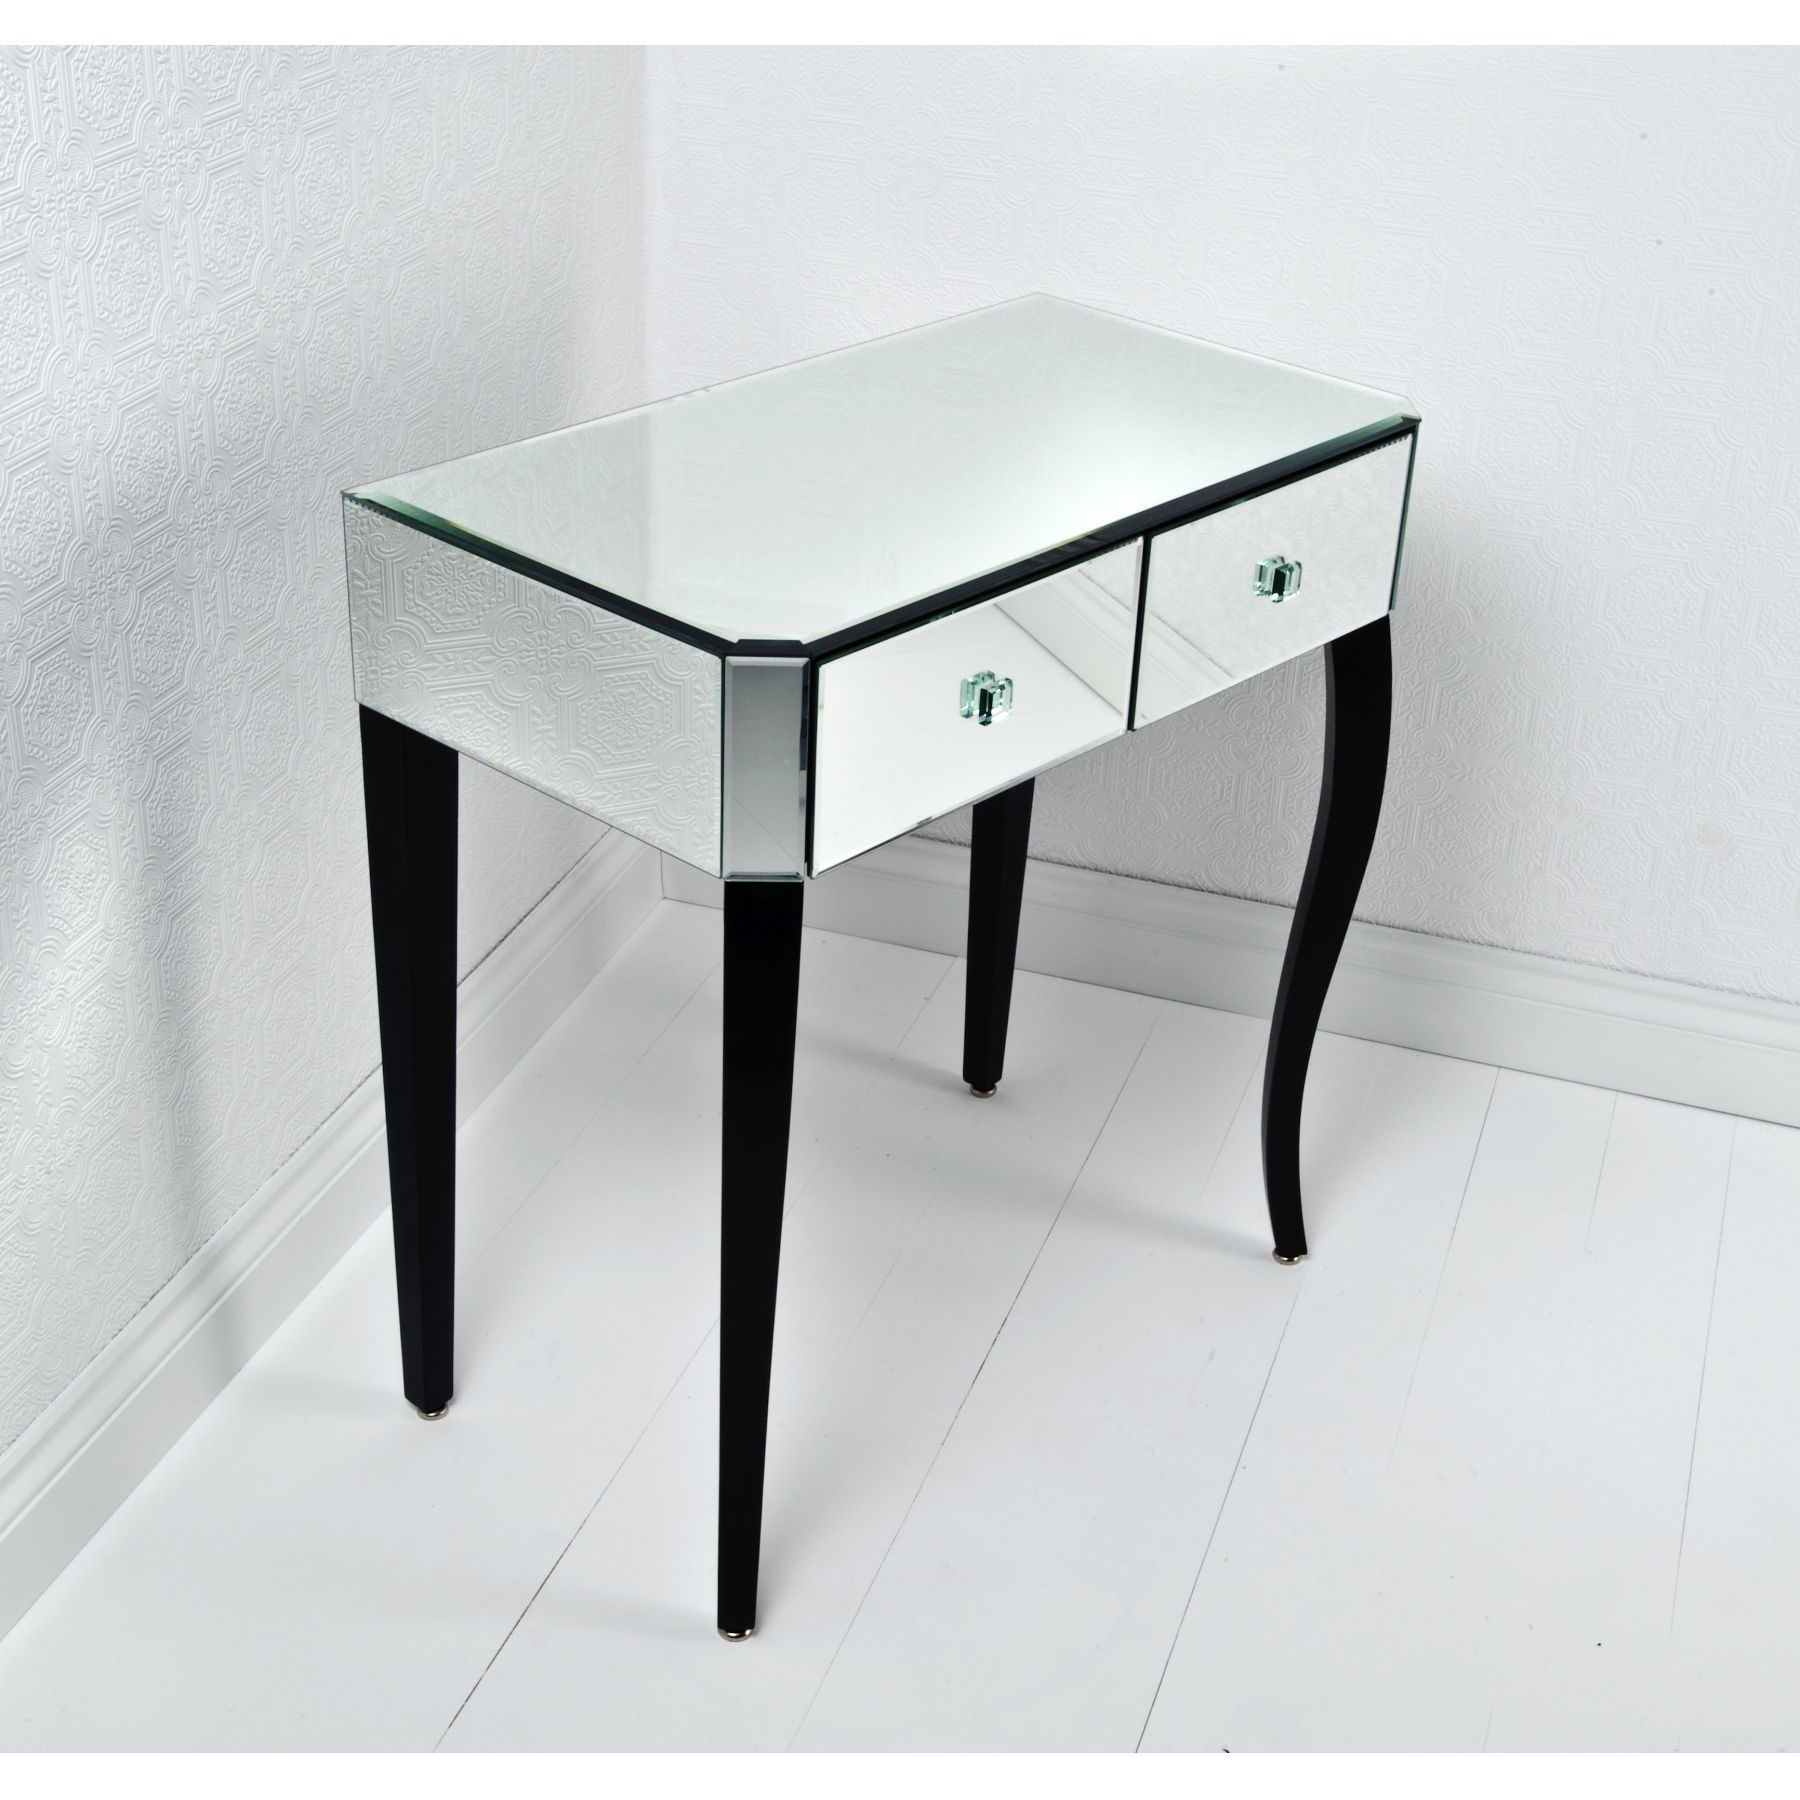 Dressing table with mirror small venetian mirror dressing table  bedroom design  pinterest